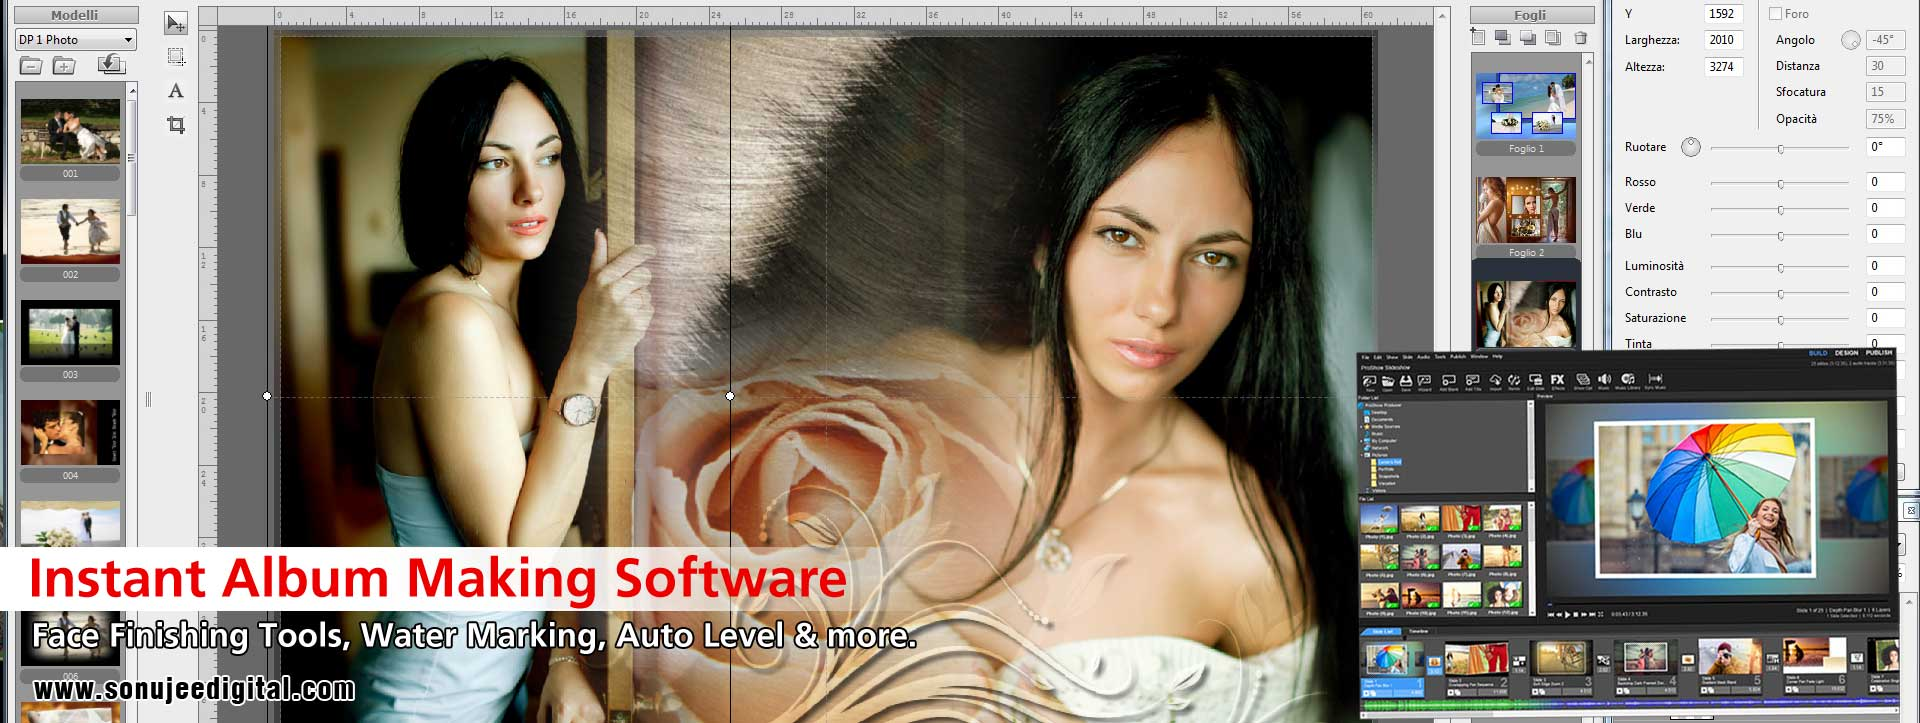 Instant Album Making Software dealers distributors suppliers in india punjab ludhiana